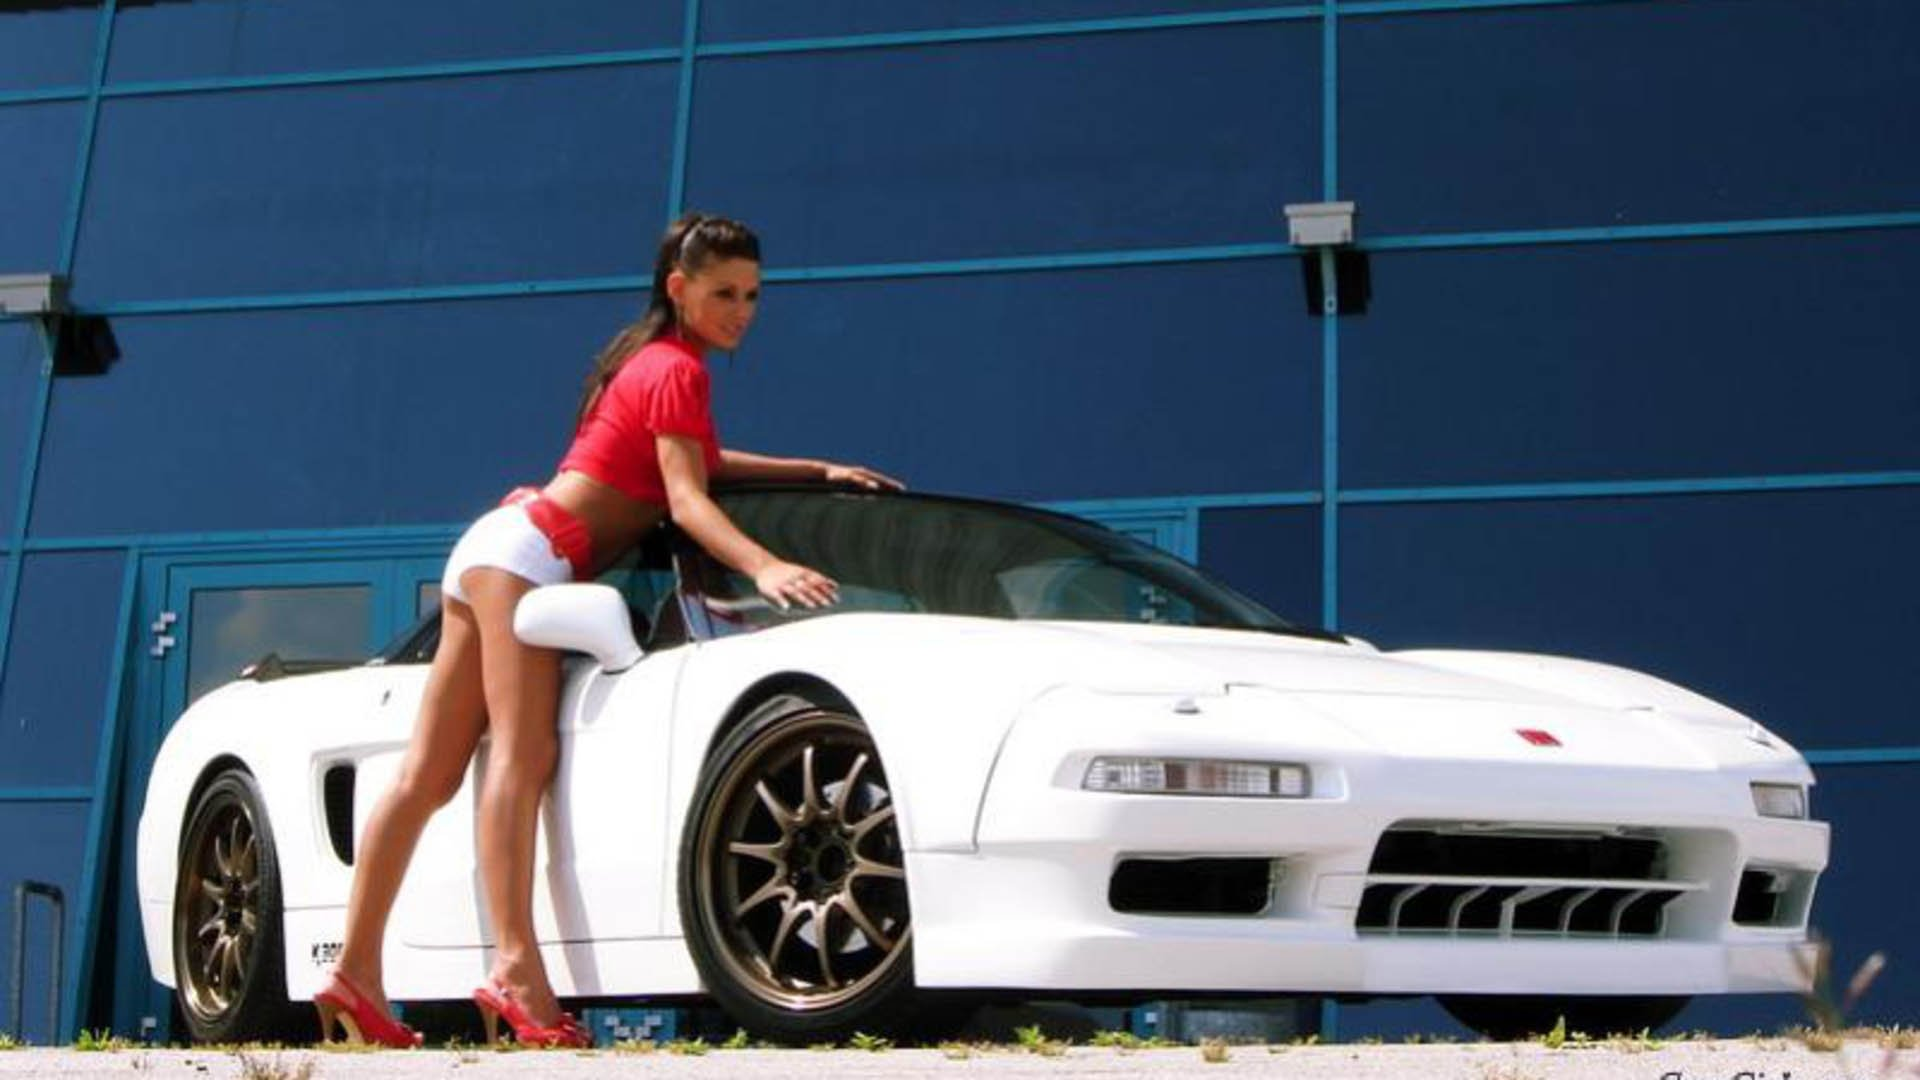 Hot Girl With Car Wallpaper 13   SA Wallpapers 1920x1080